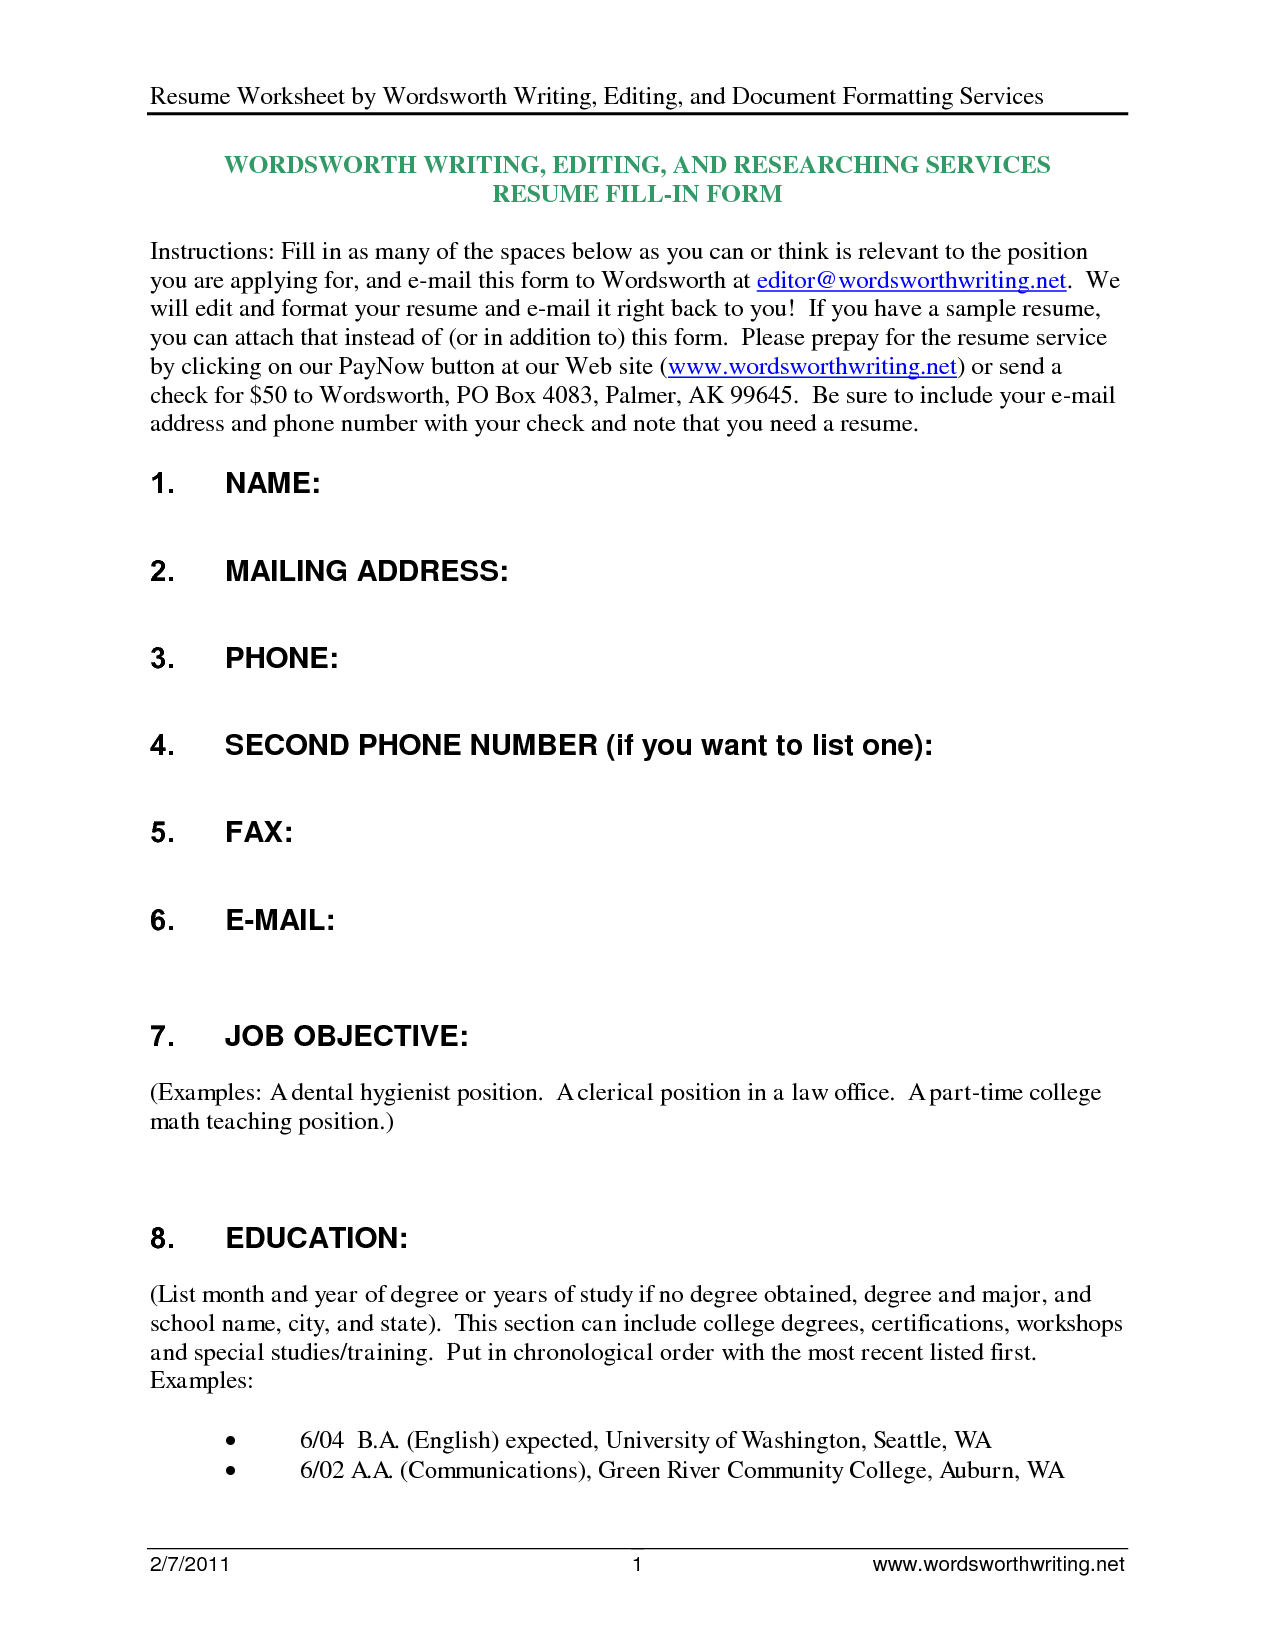 resume degree expected resume ideas